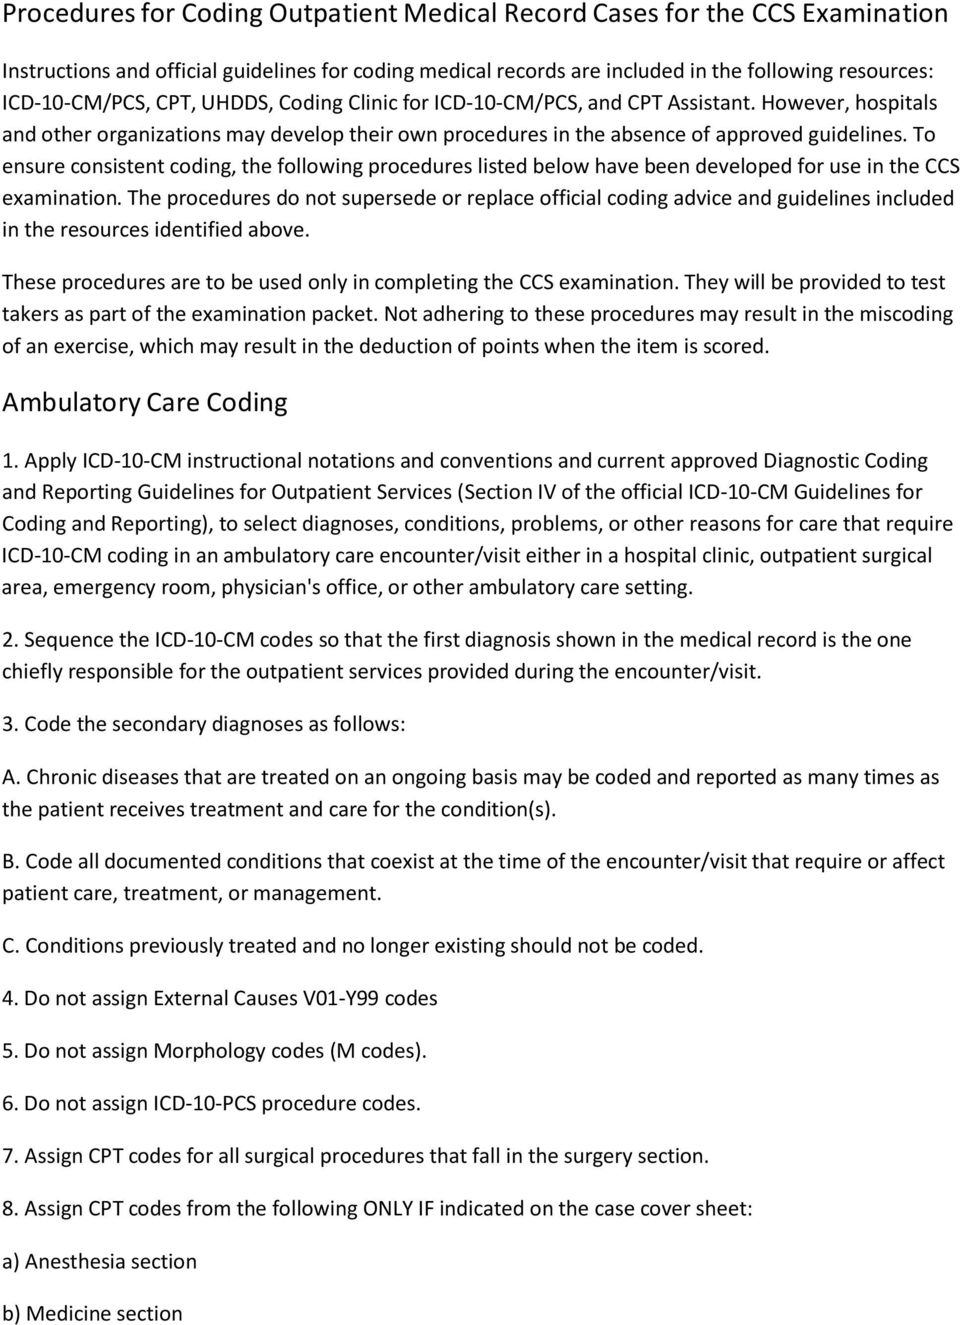 To ensure consistent coding, the following procedures listed below have been developed for use in the CCS examination.